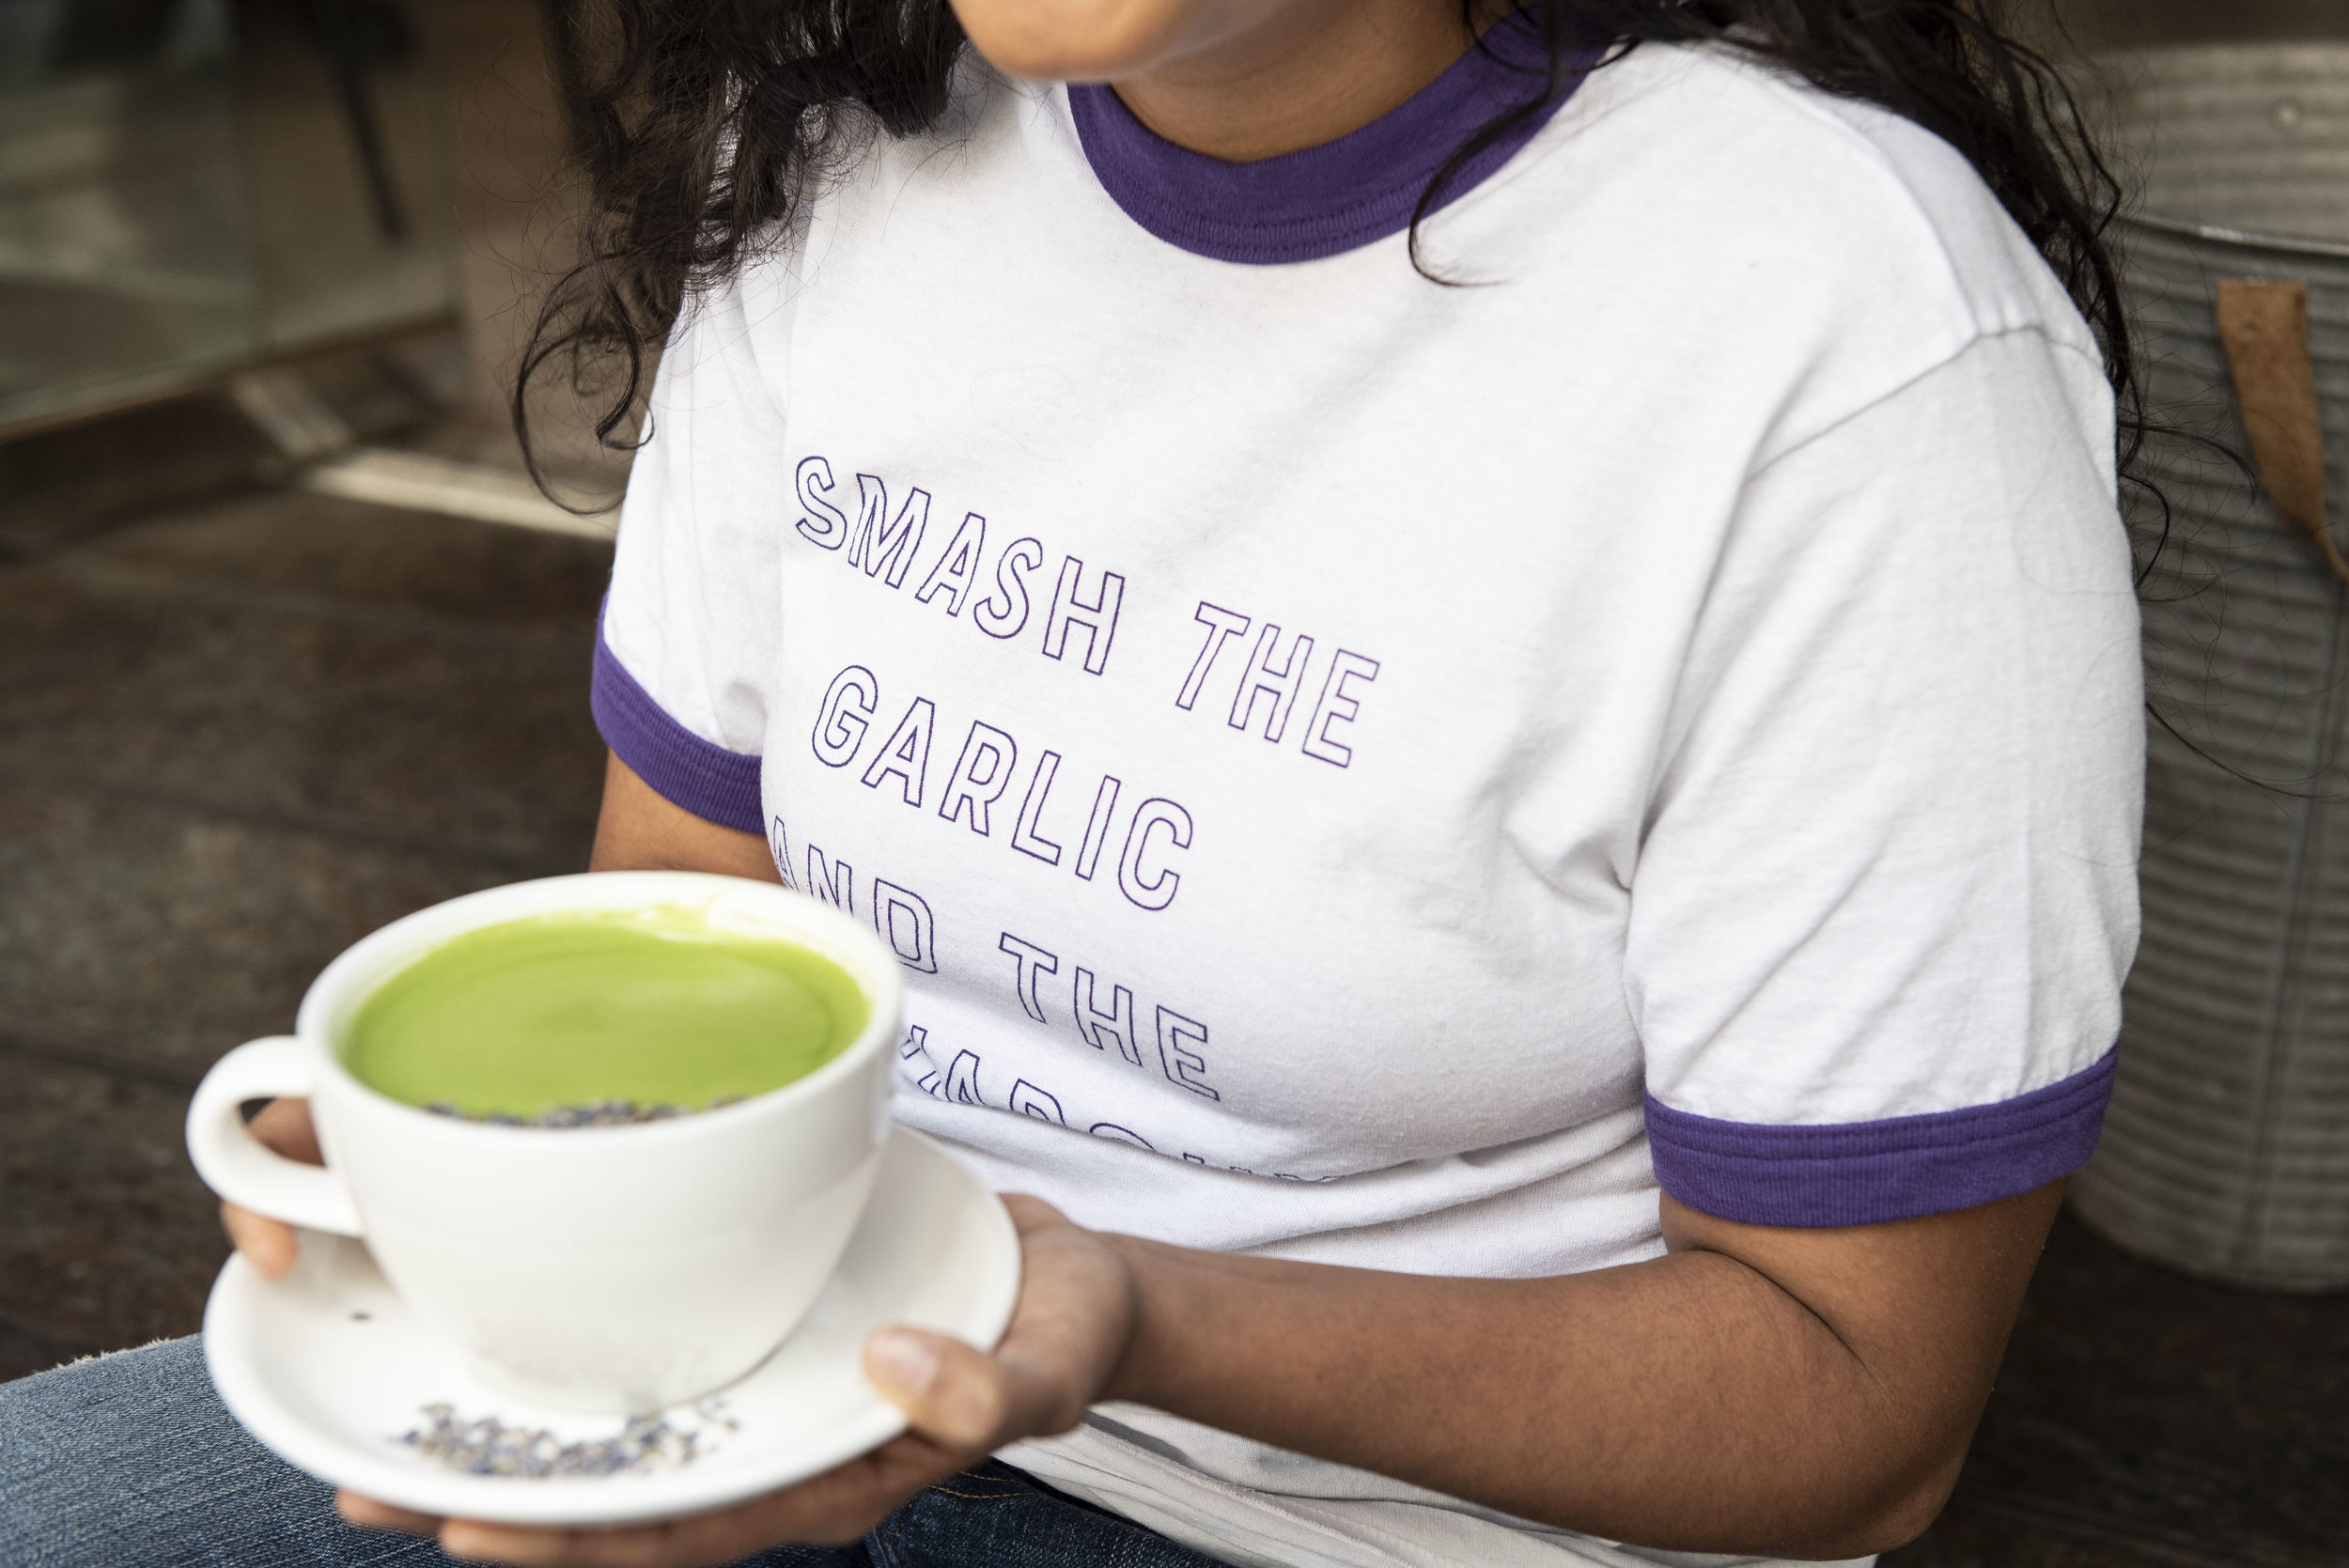 Deepti Sharma, photographed by Liz Clayman at Blank Slate cafe in Manhattan